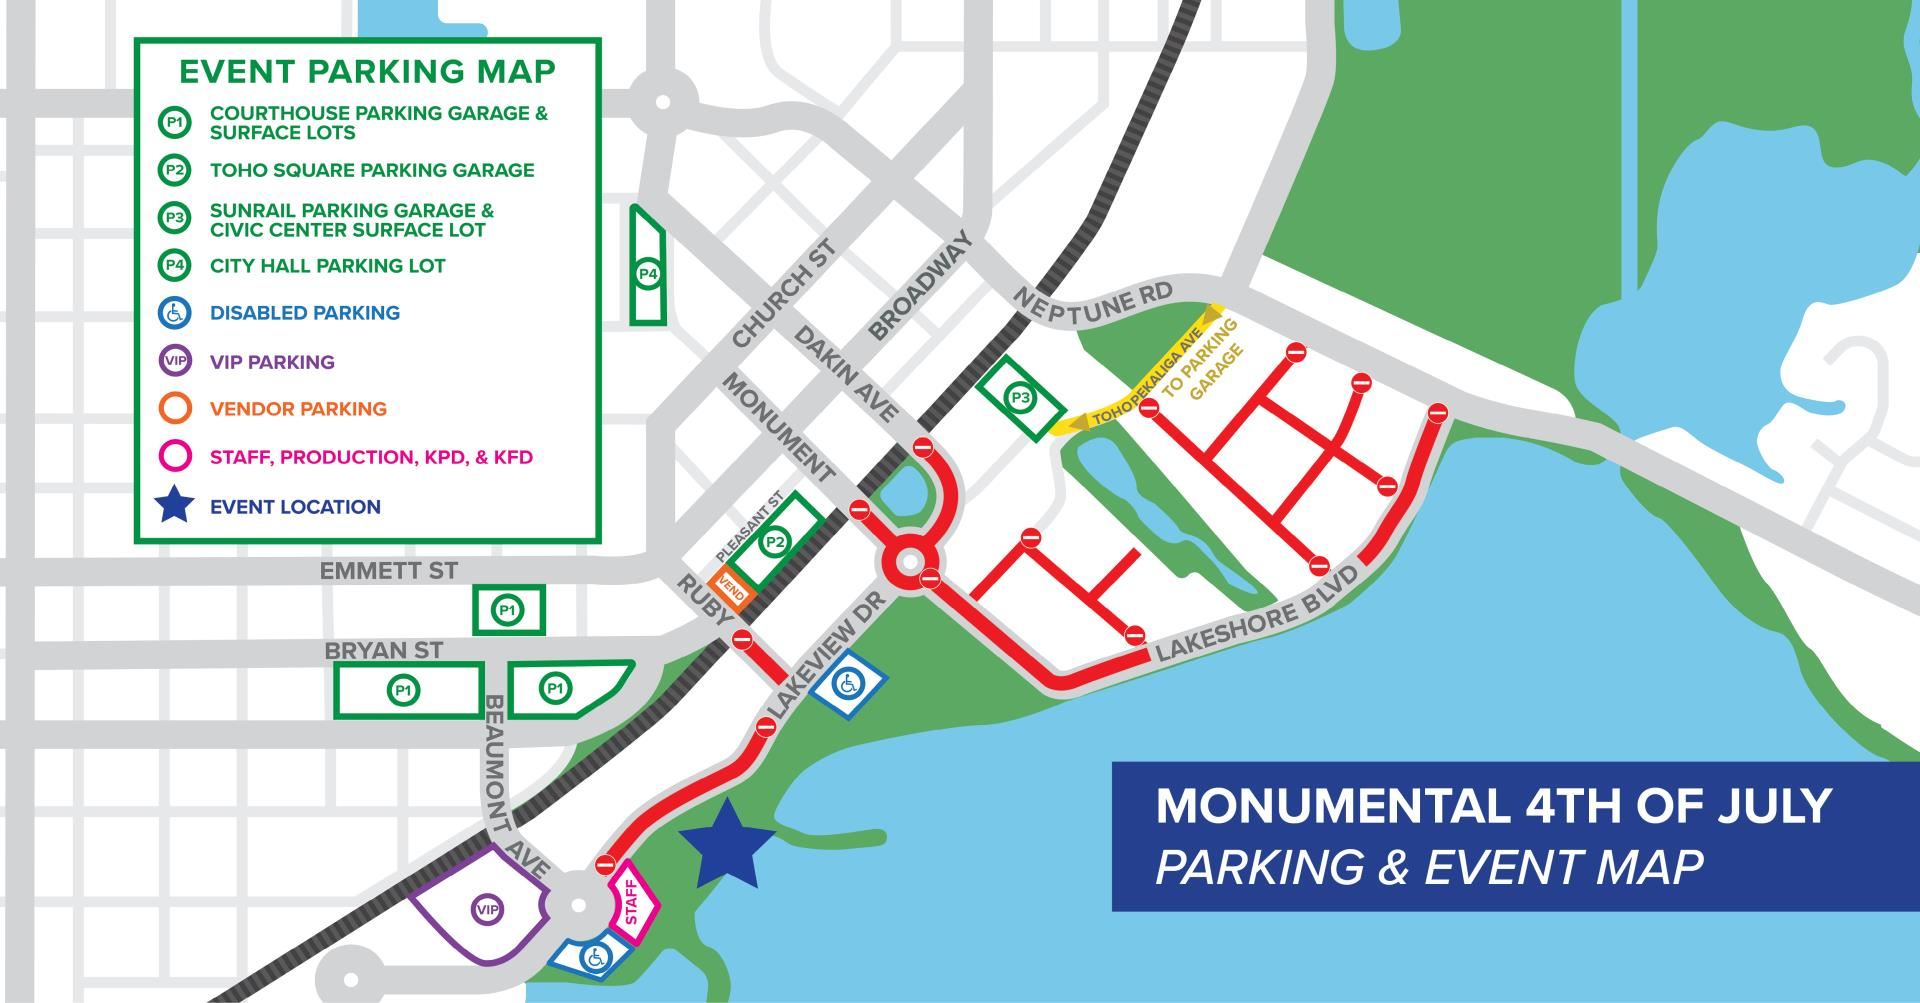 This is a map showing the parking locations for the 2019 Monumental 4th of July event. There is parkign at the Sunrail Parking garage, Toho Square parking garage and Osceola County courthouse parking garage.